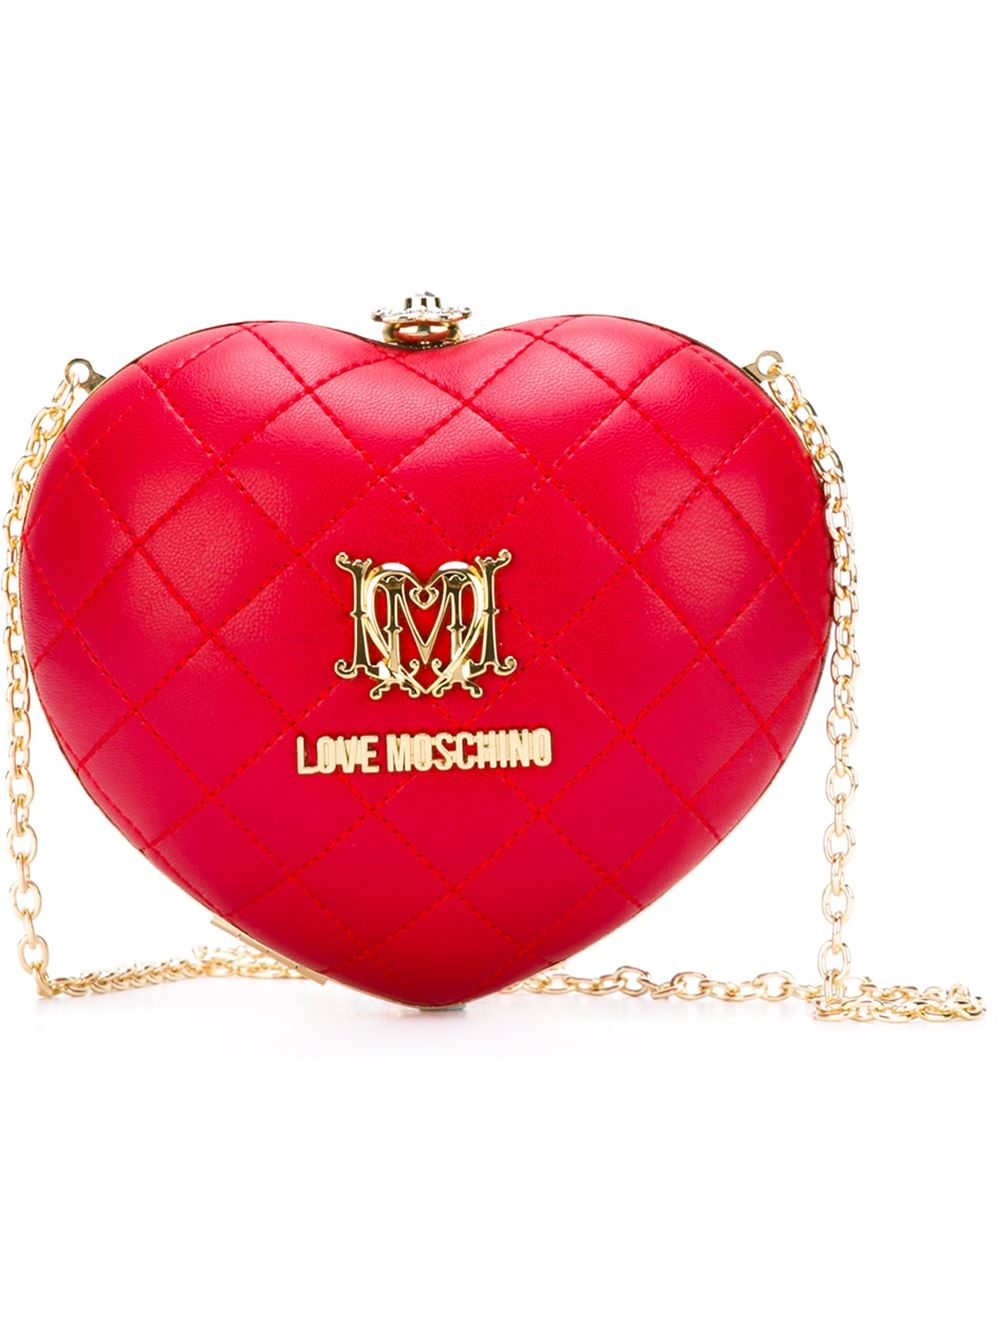 6f7c791e1c Love Moschino Quilted Heart Clutch in Metallic - Lyst